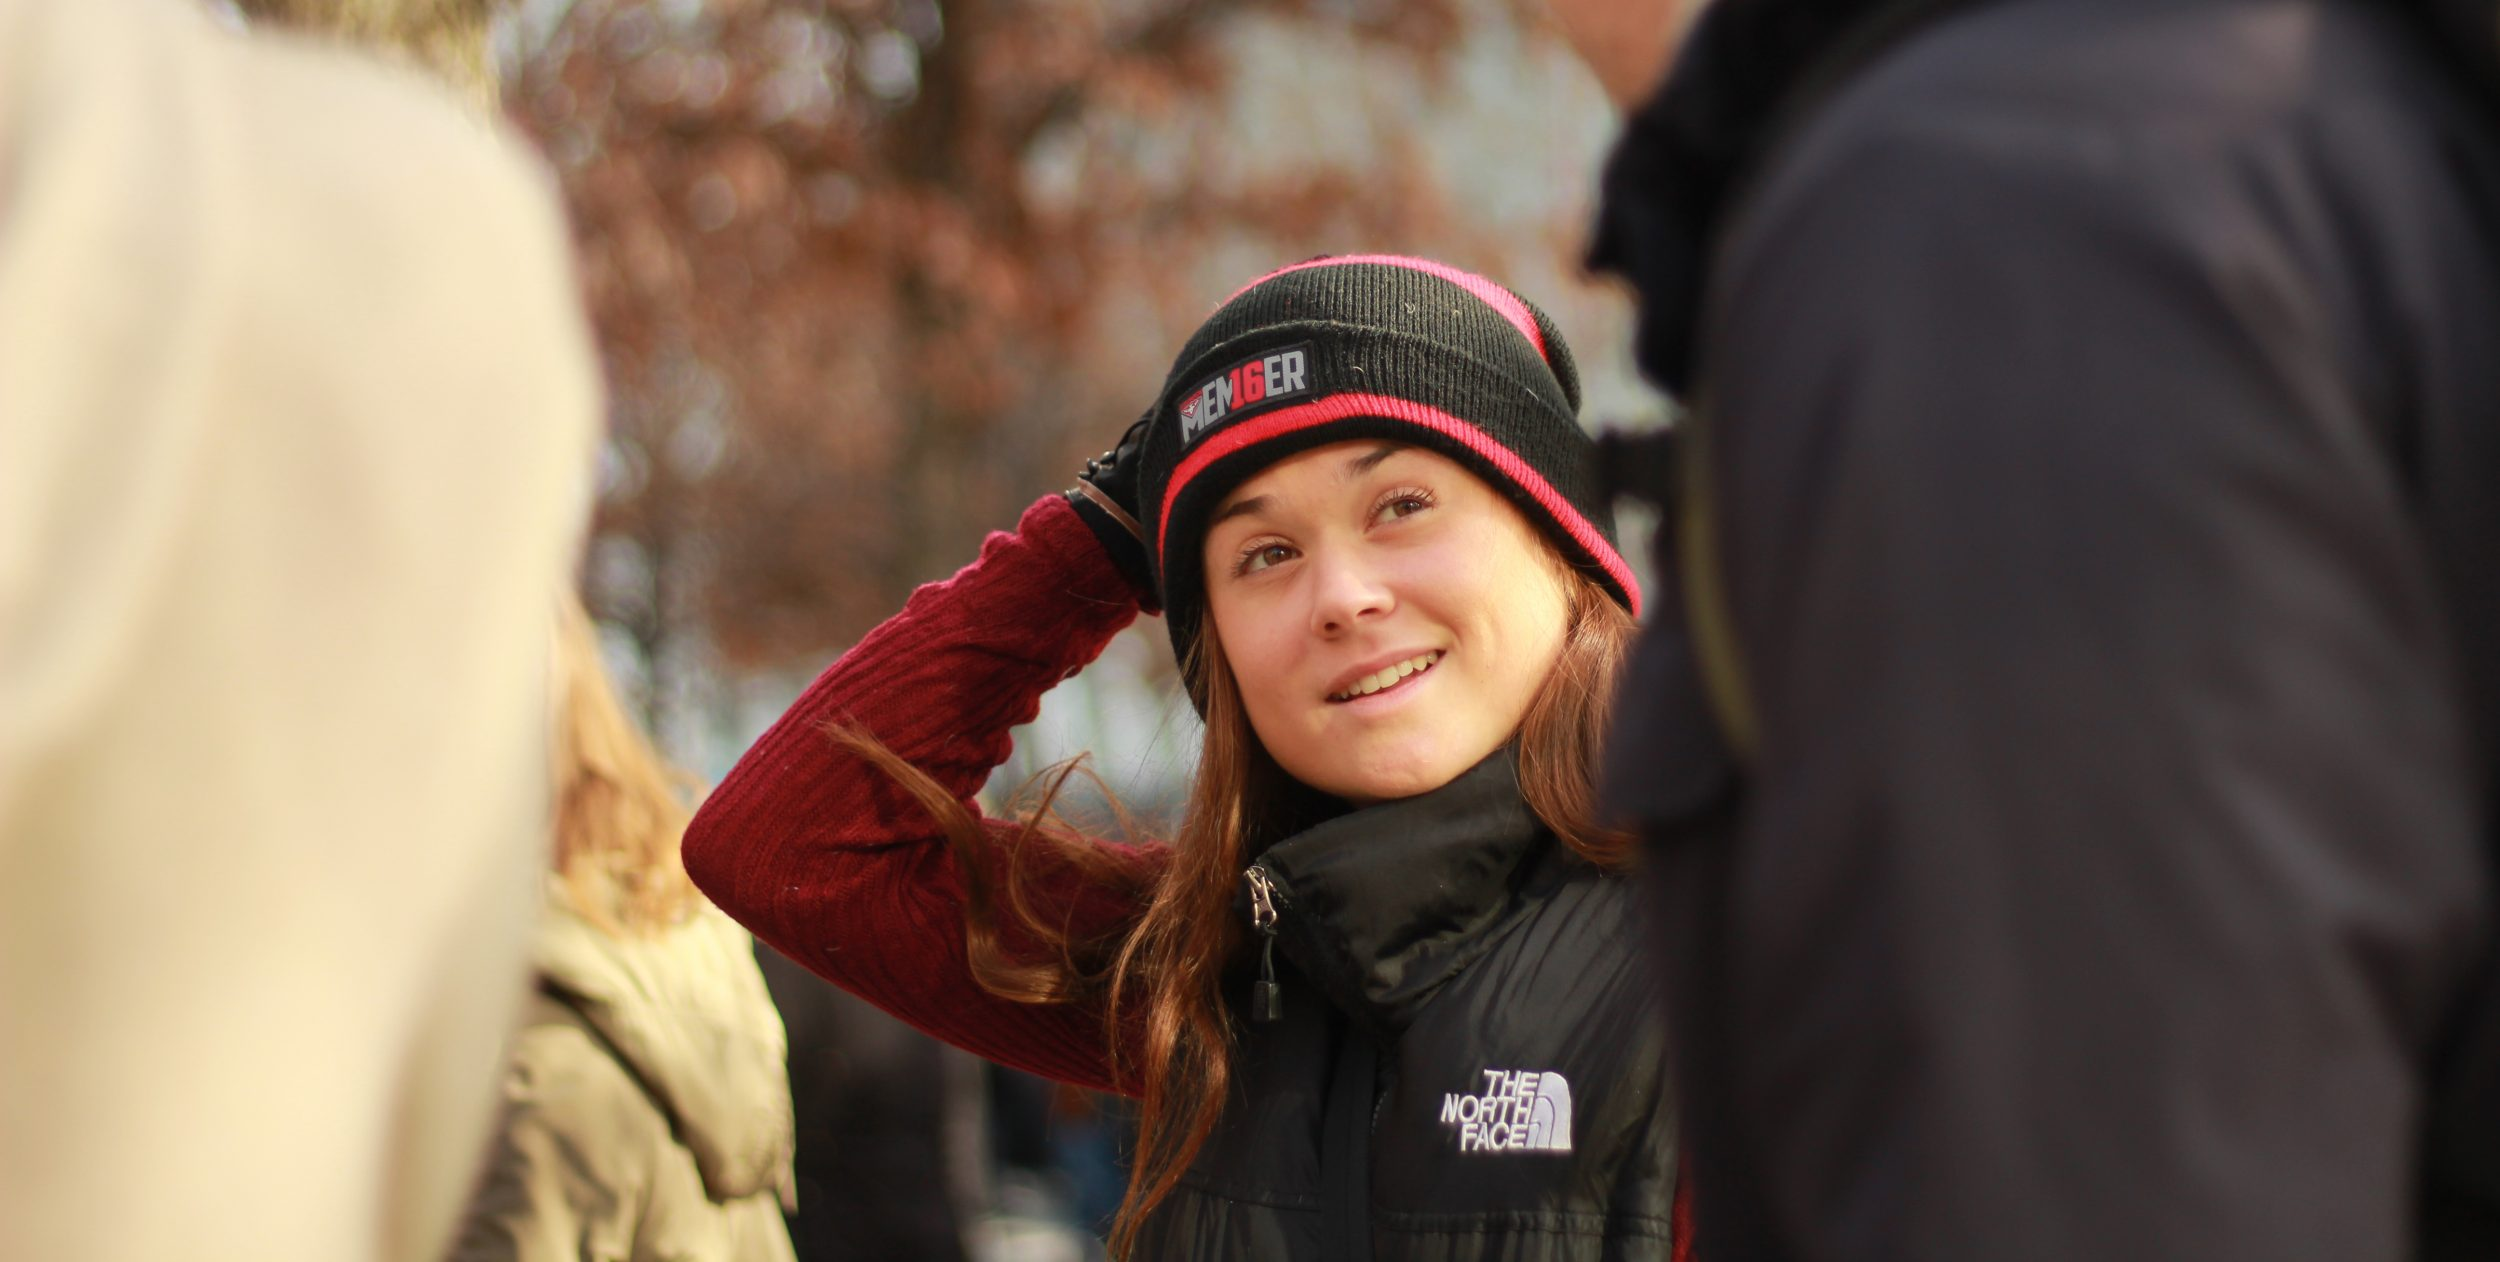 Monash journalism student Sophie Griffiths rugs up for the wintry conditions in New York City.